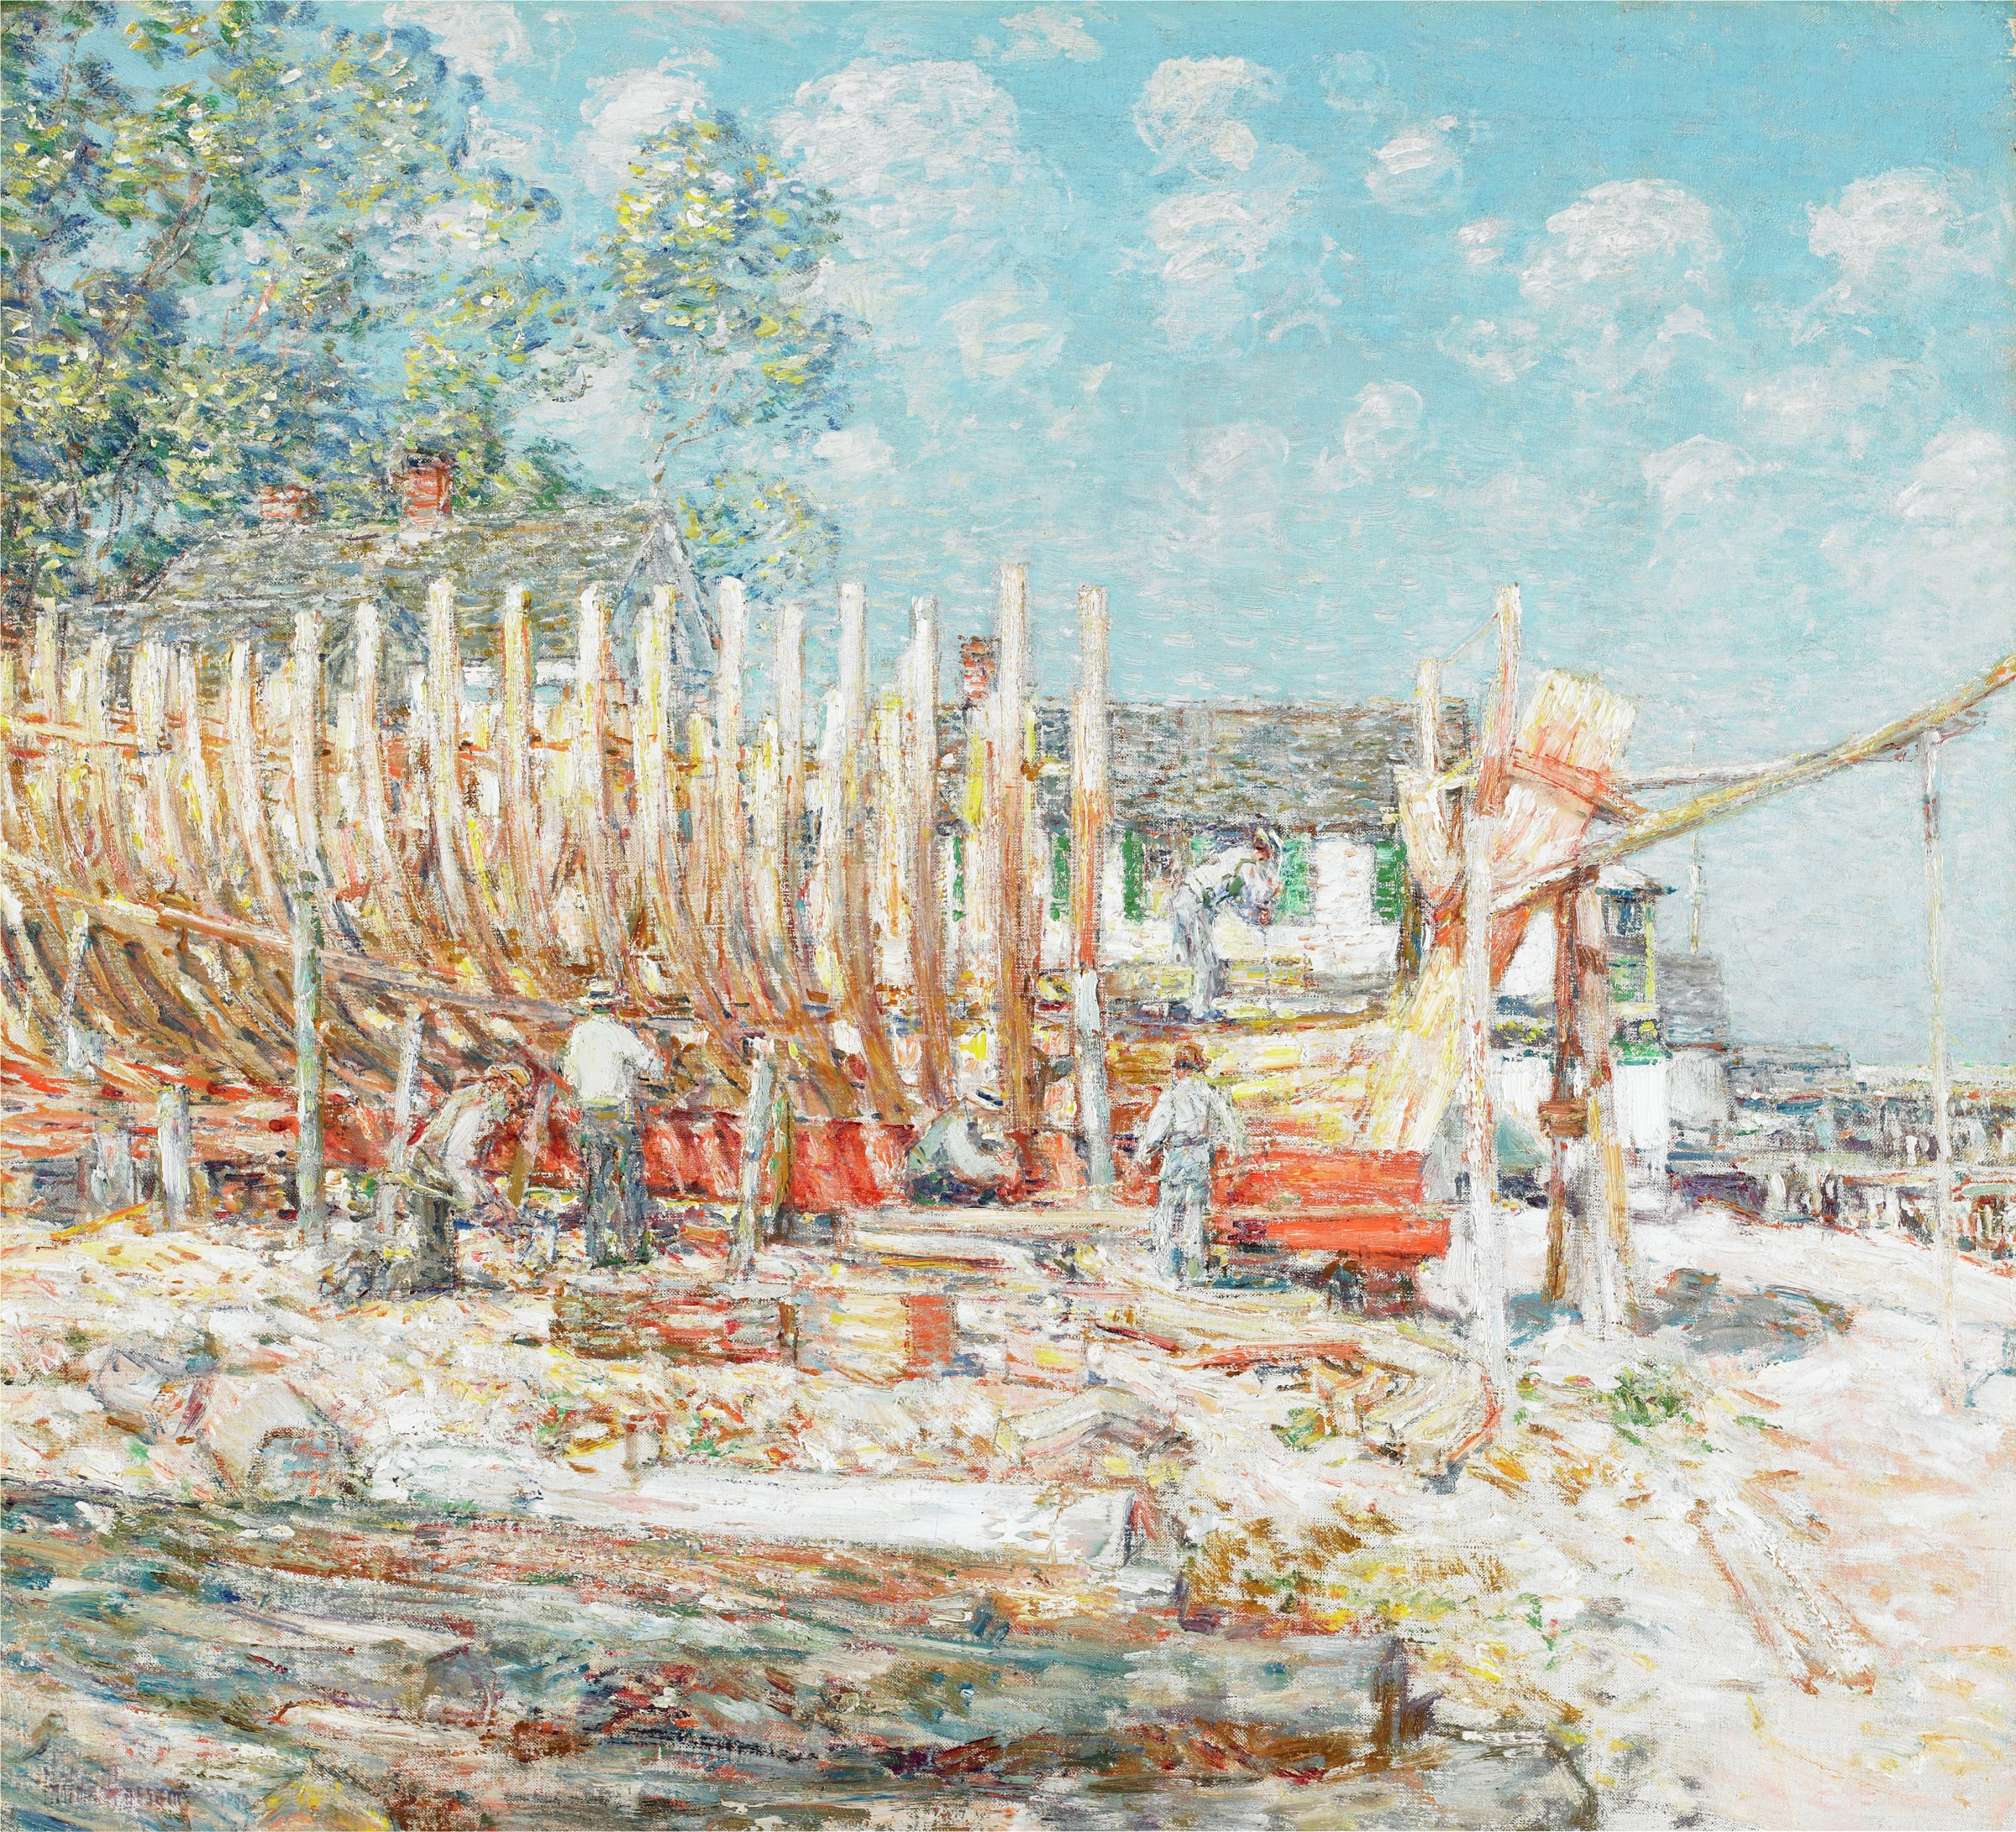 Horizontal logs and planks in foreground; five men working on skeletal hull of ship in middle ground; white buildings with green shutters in background.  Green foliage in upper left corner; blue sky with white clouds in upper right corner.